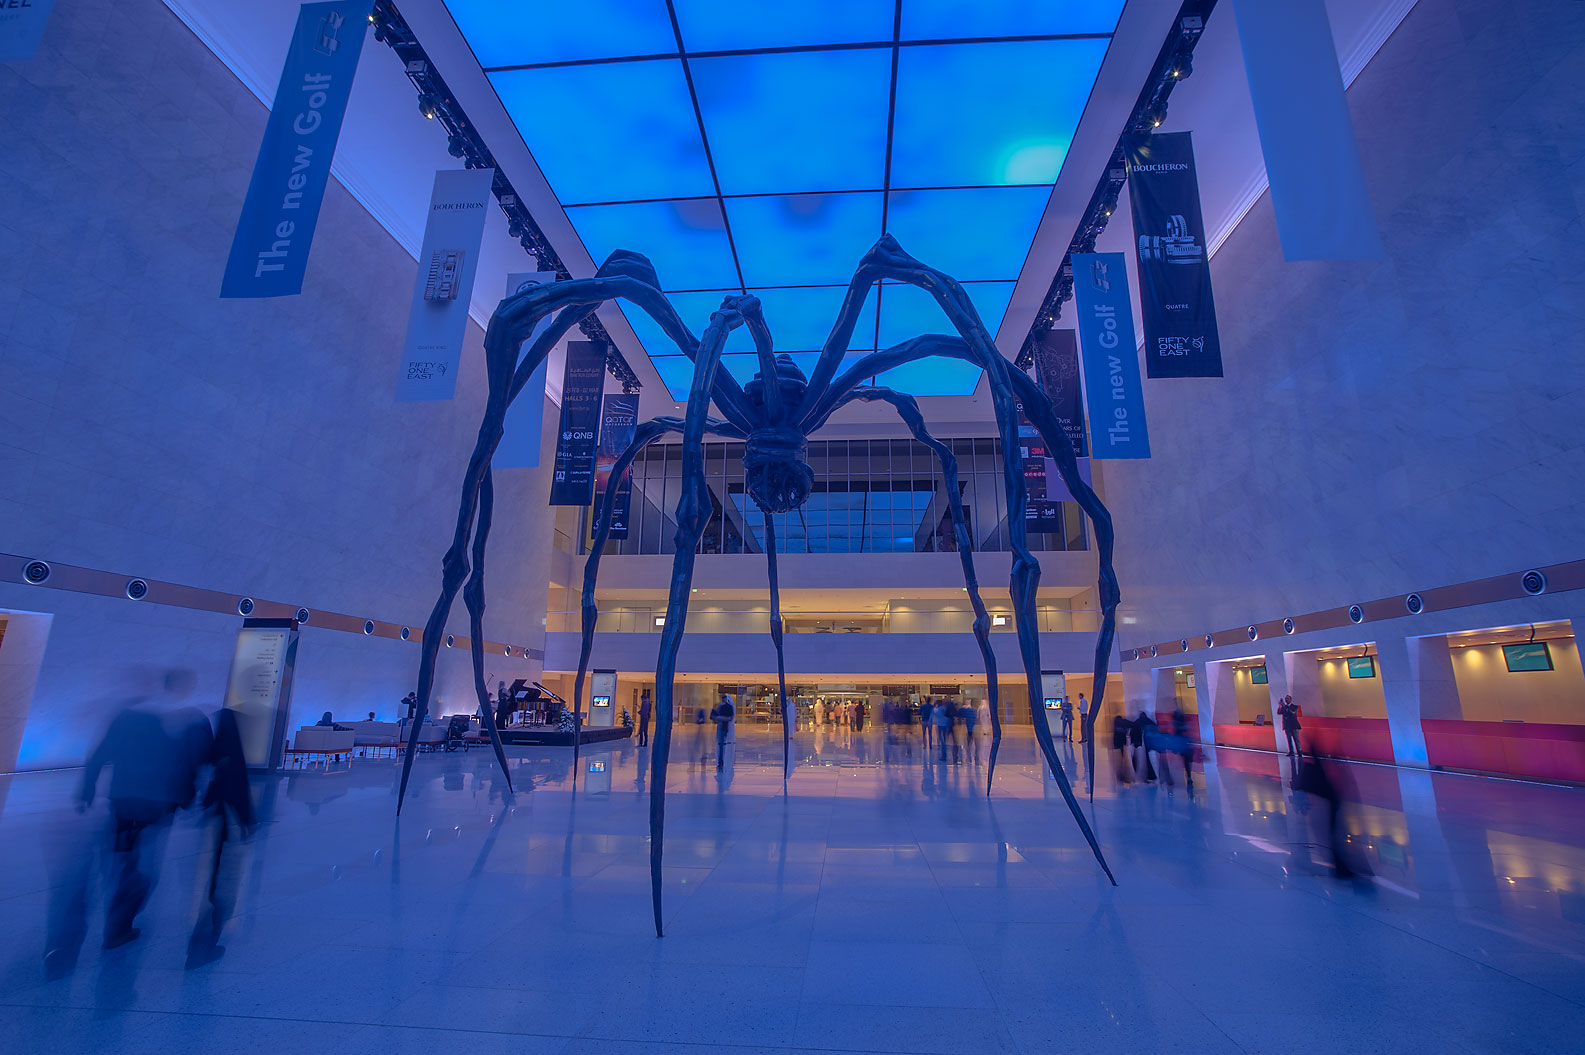 Maman Spider sculpture by Louise Bourgeois in...Convention Centre (QNCC). Doha, Qatar